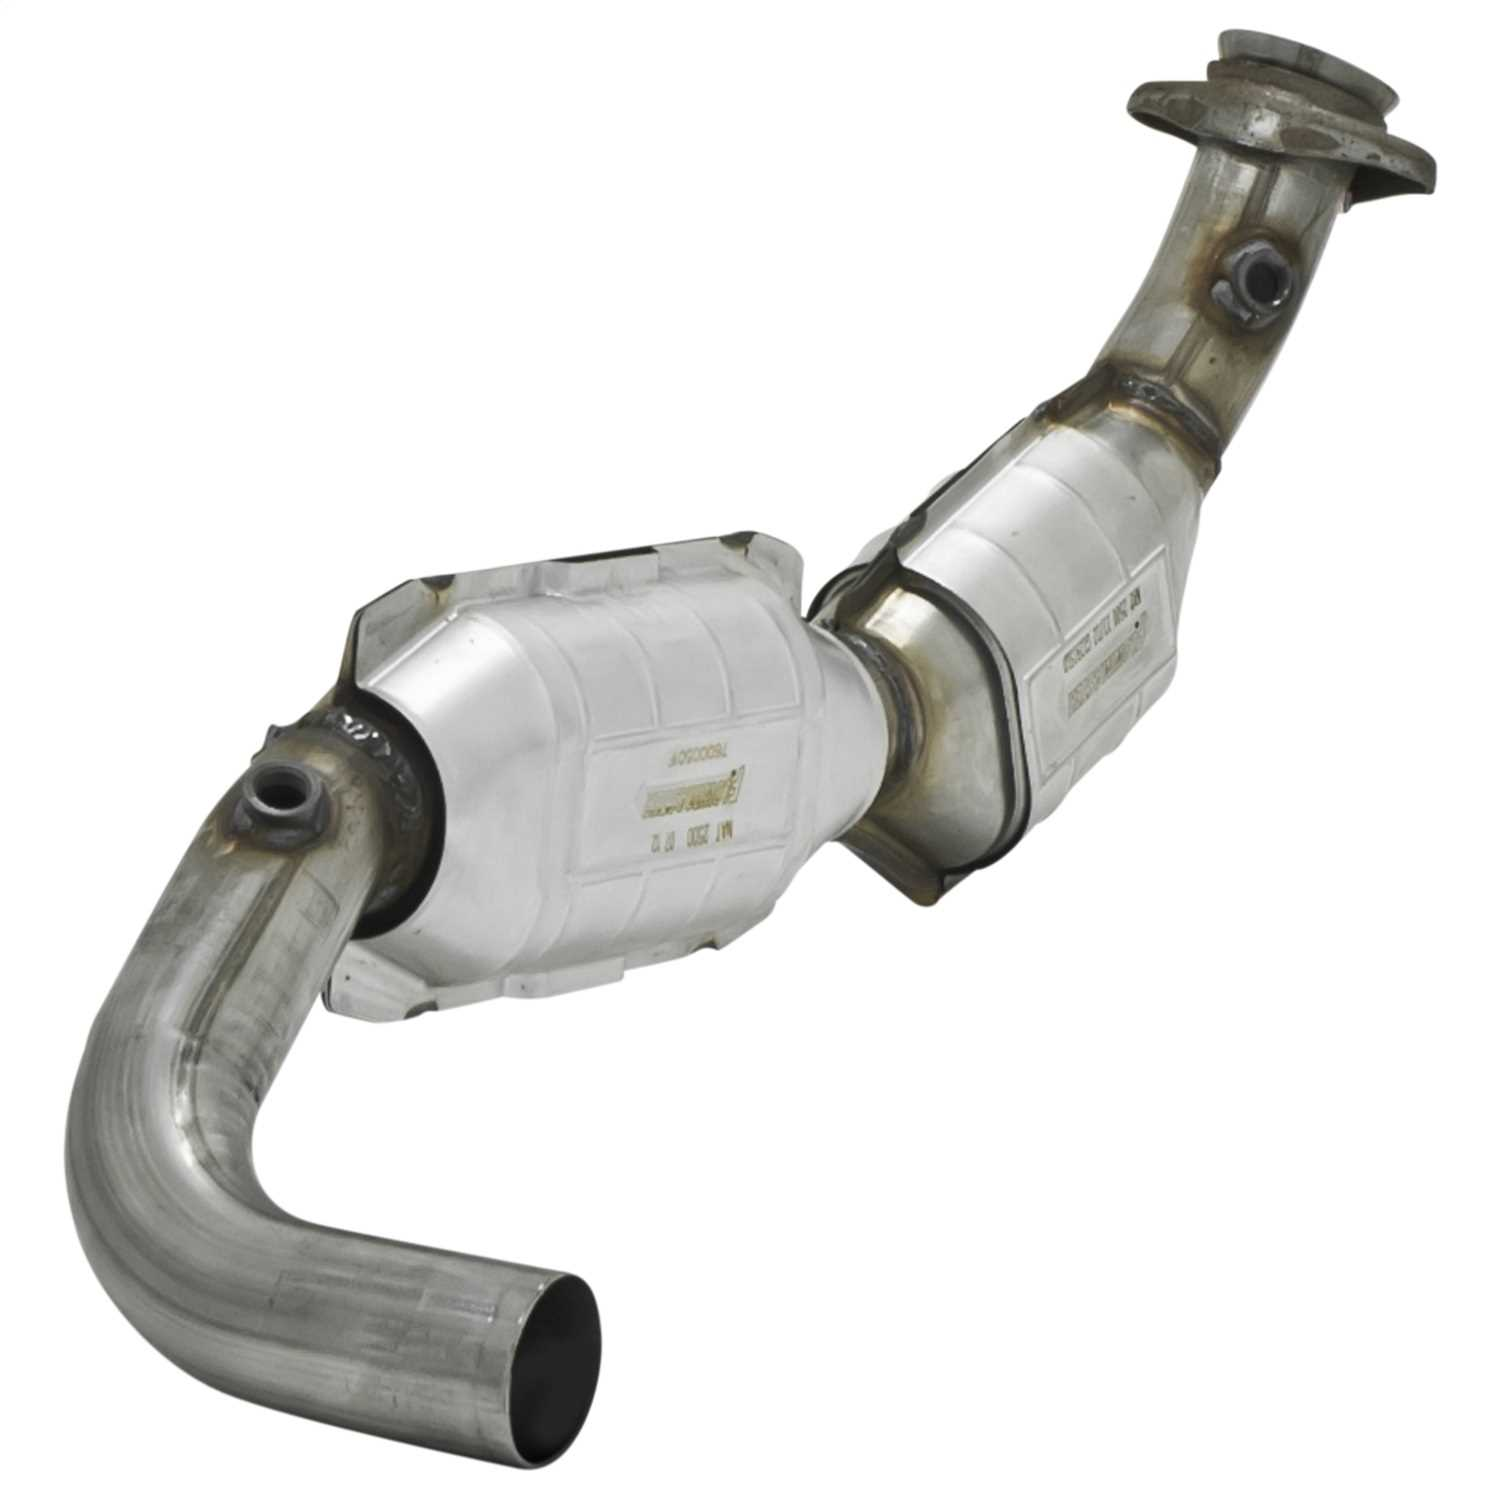 2020014 Flowmaster 49 State Catalytic Converters Direct Fit Catalytic Converter